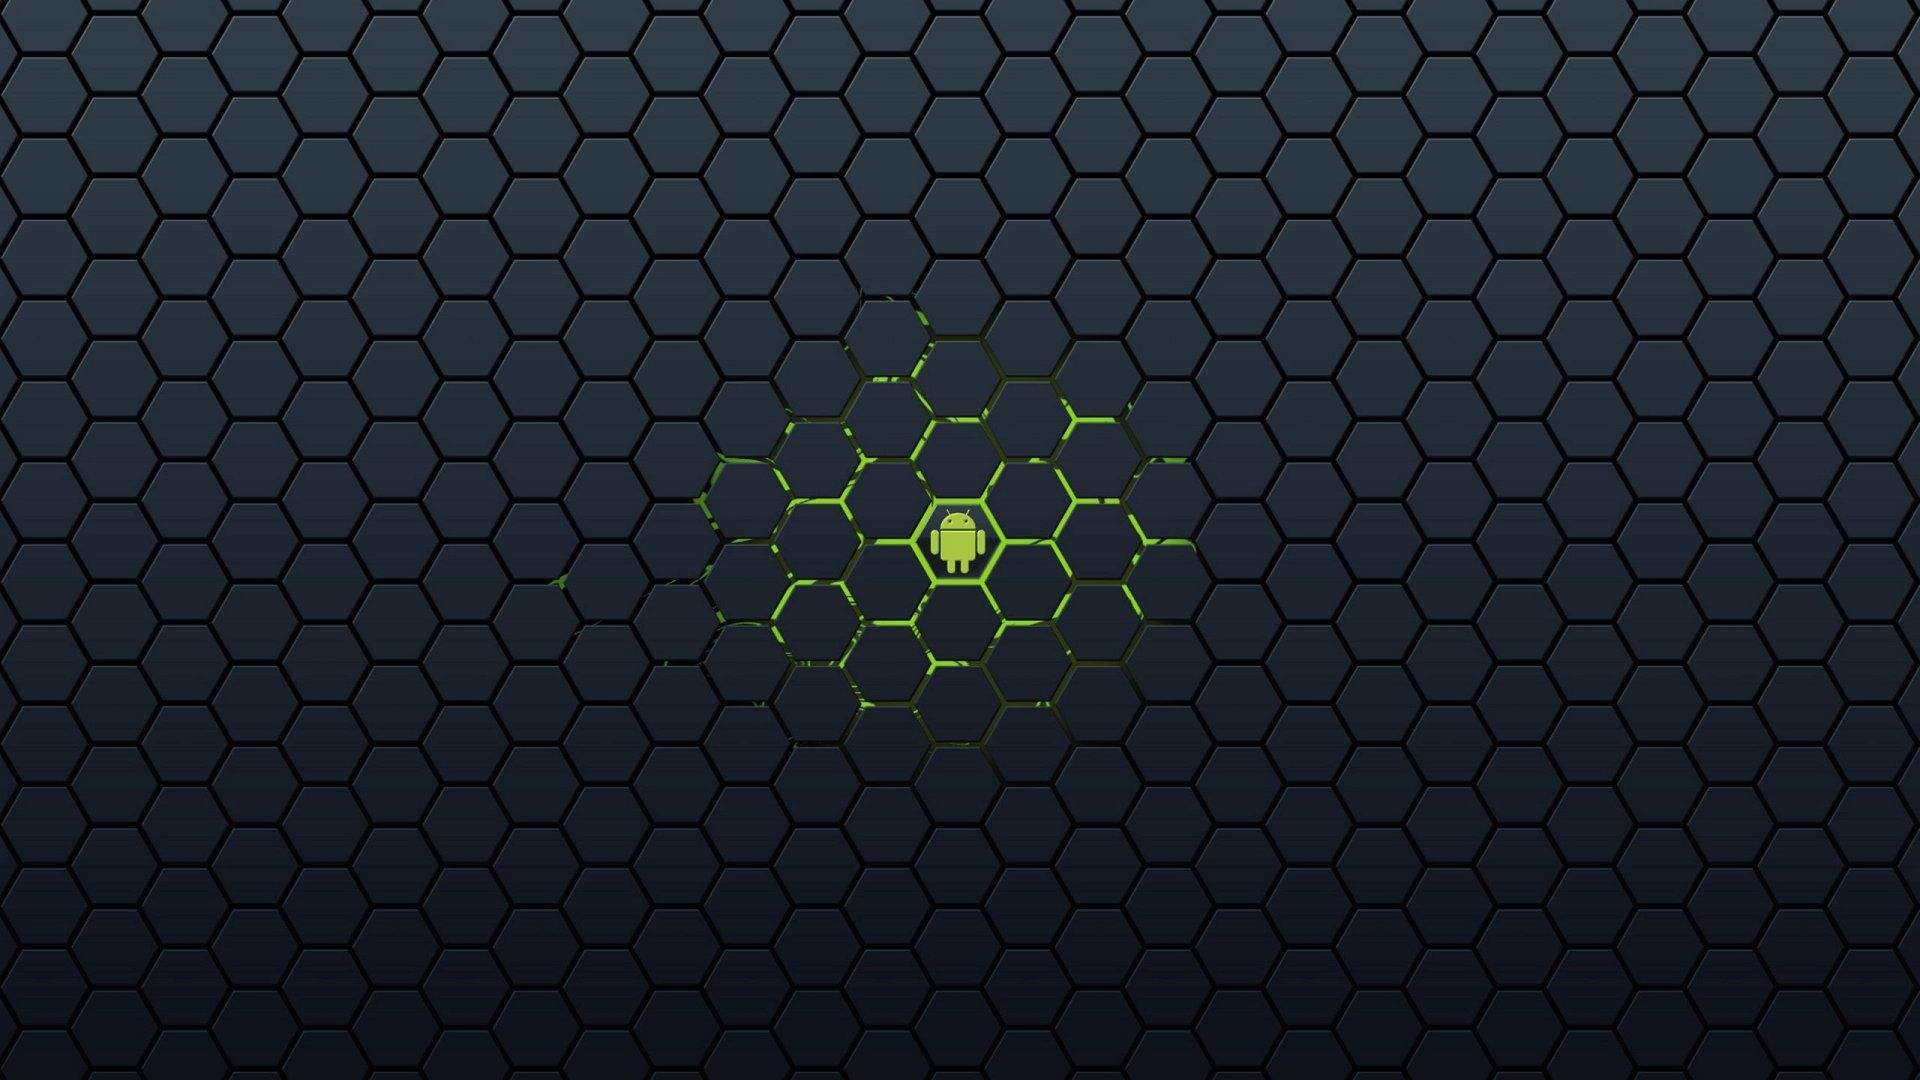 The Honeycomb Background Abstraction